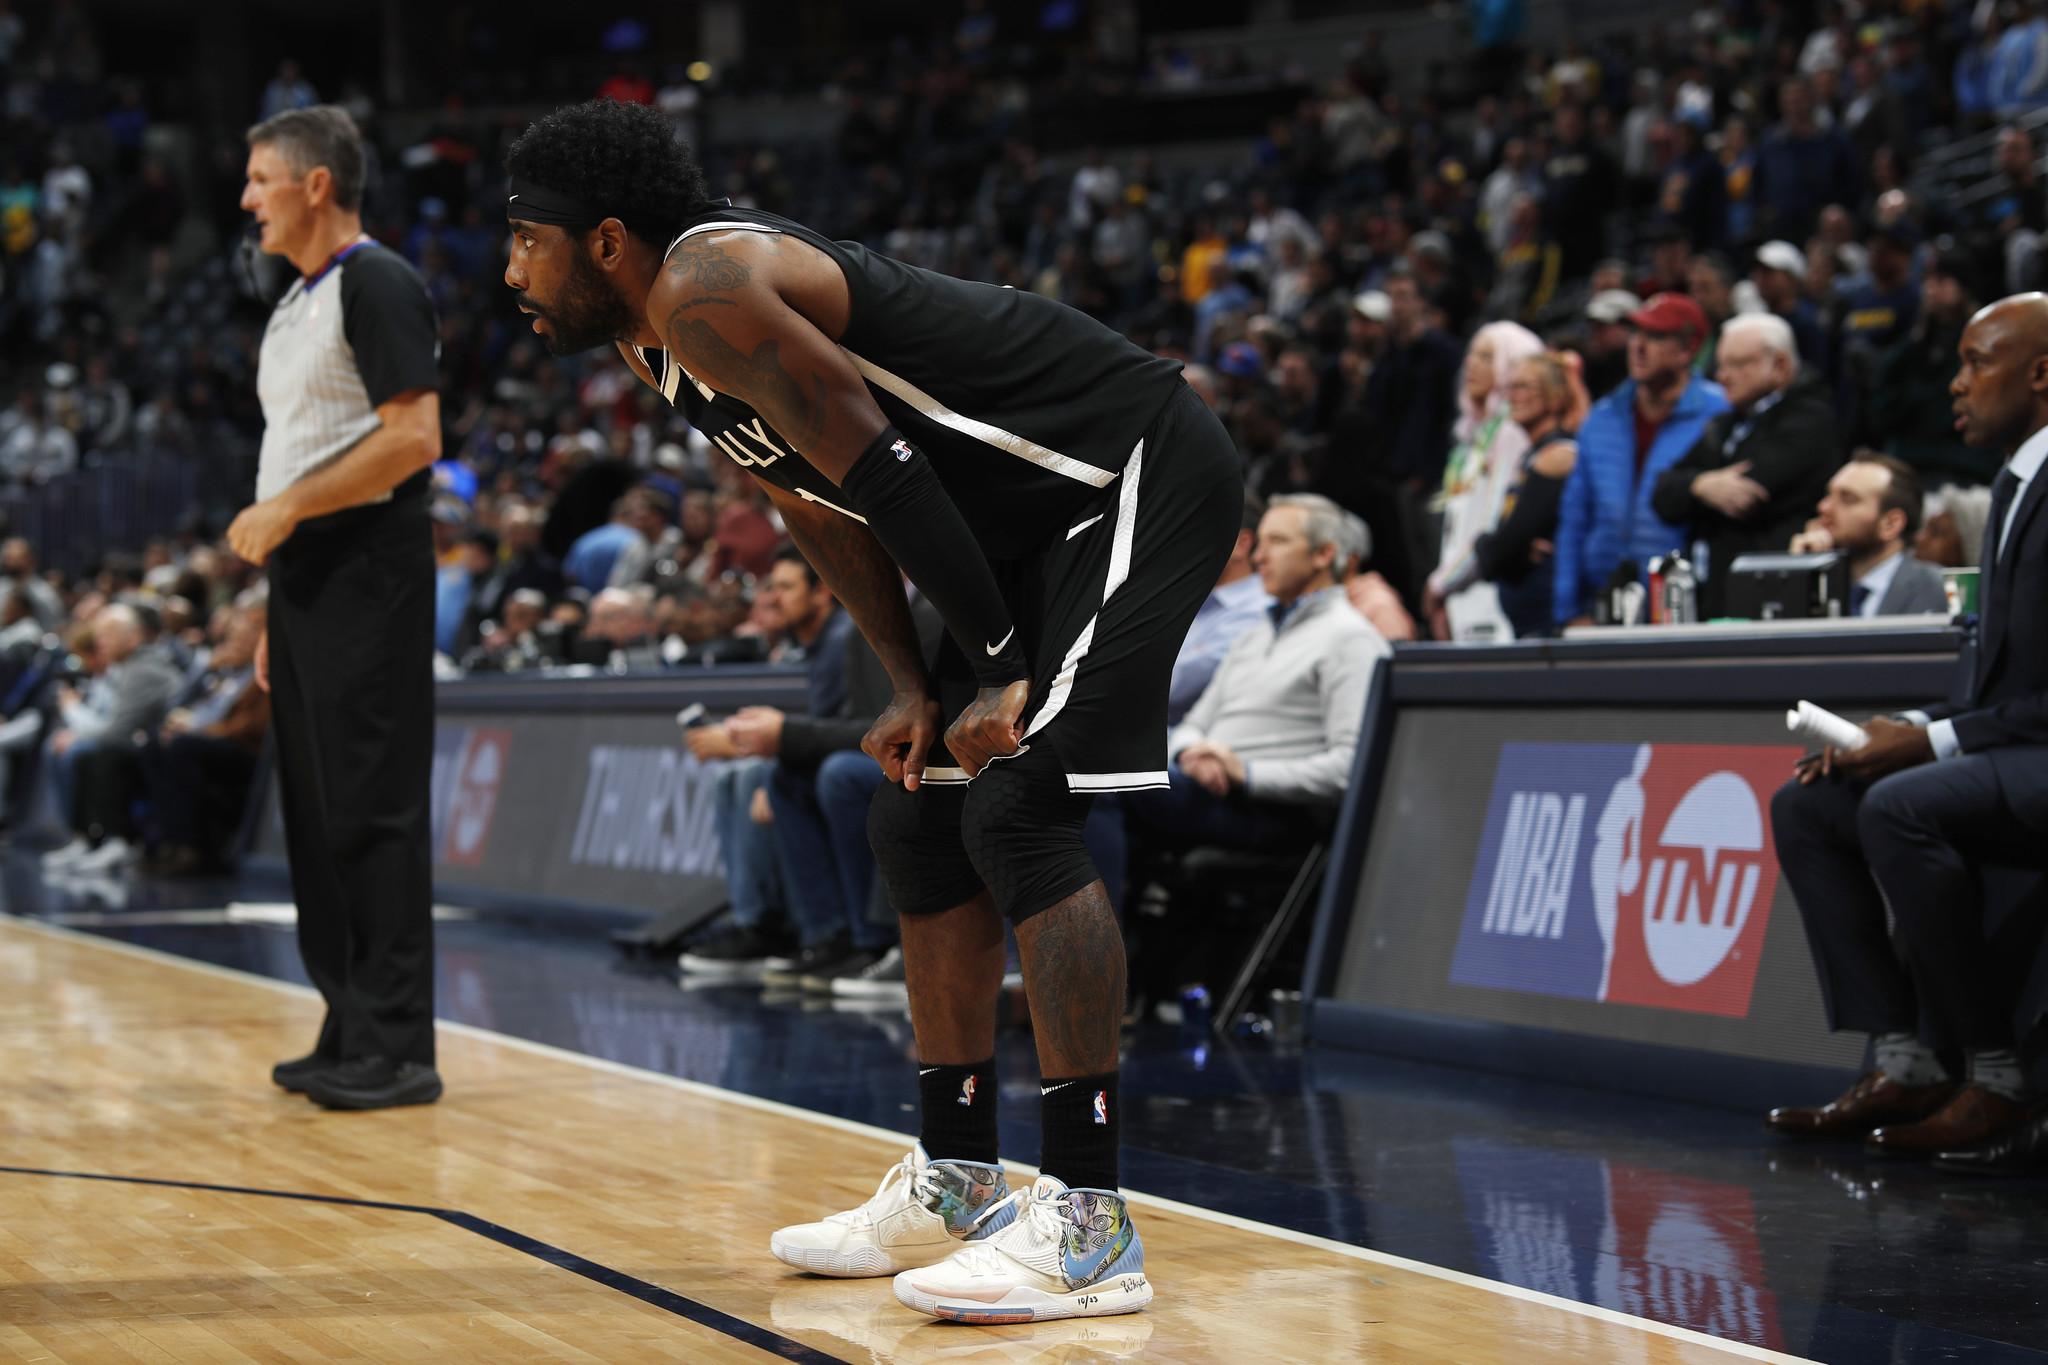 Nets Kyrie Irving to miss next 3 away games with shoulder injury